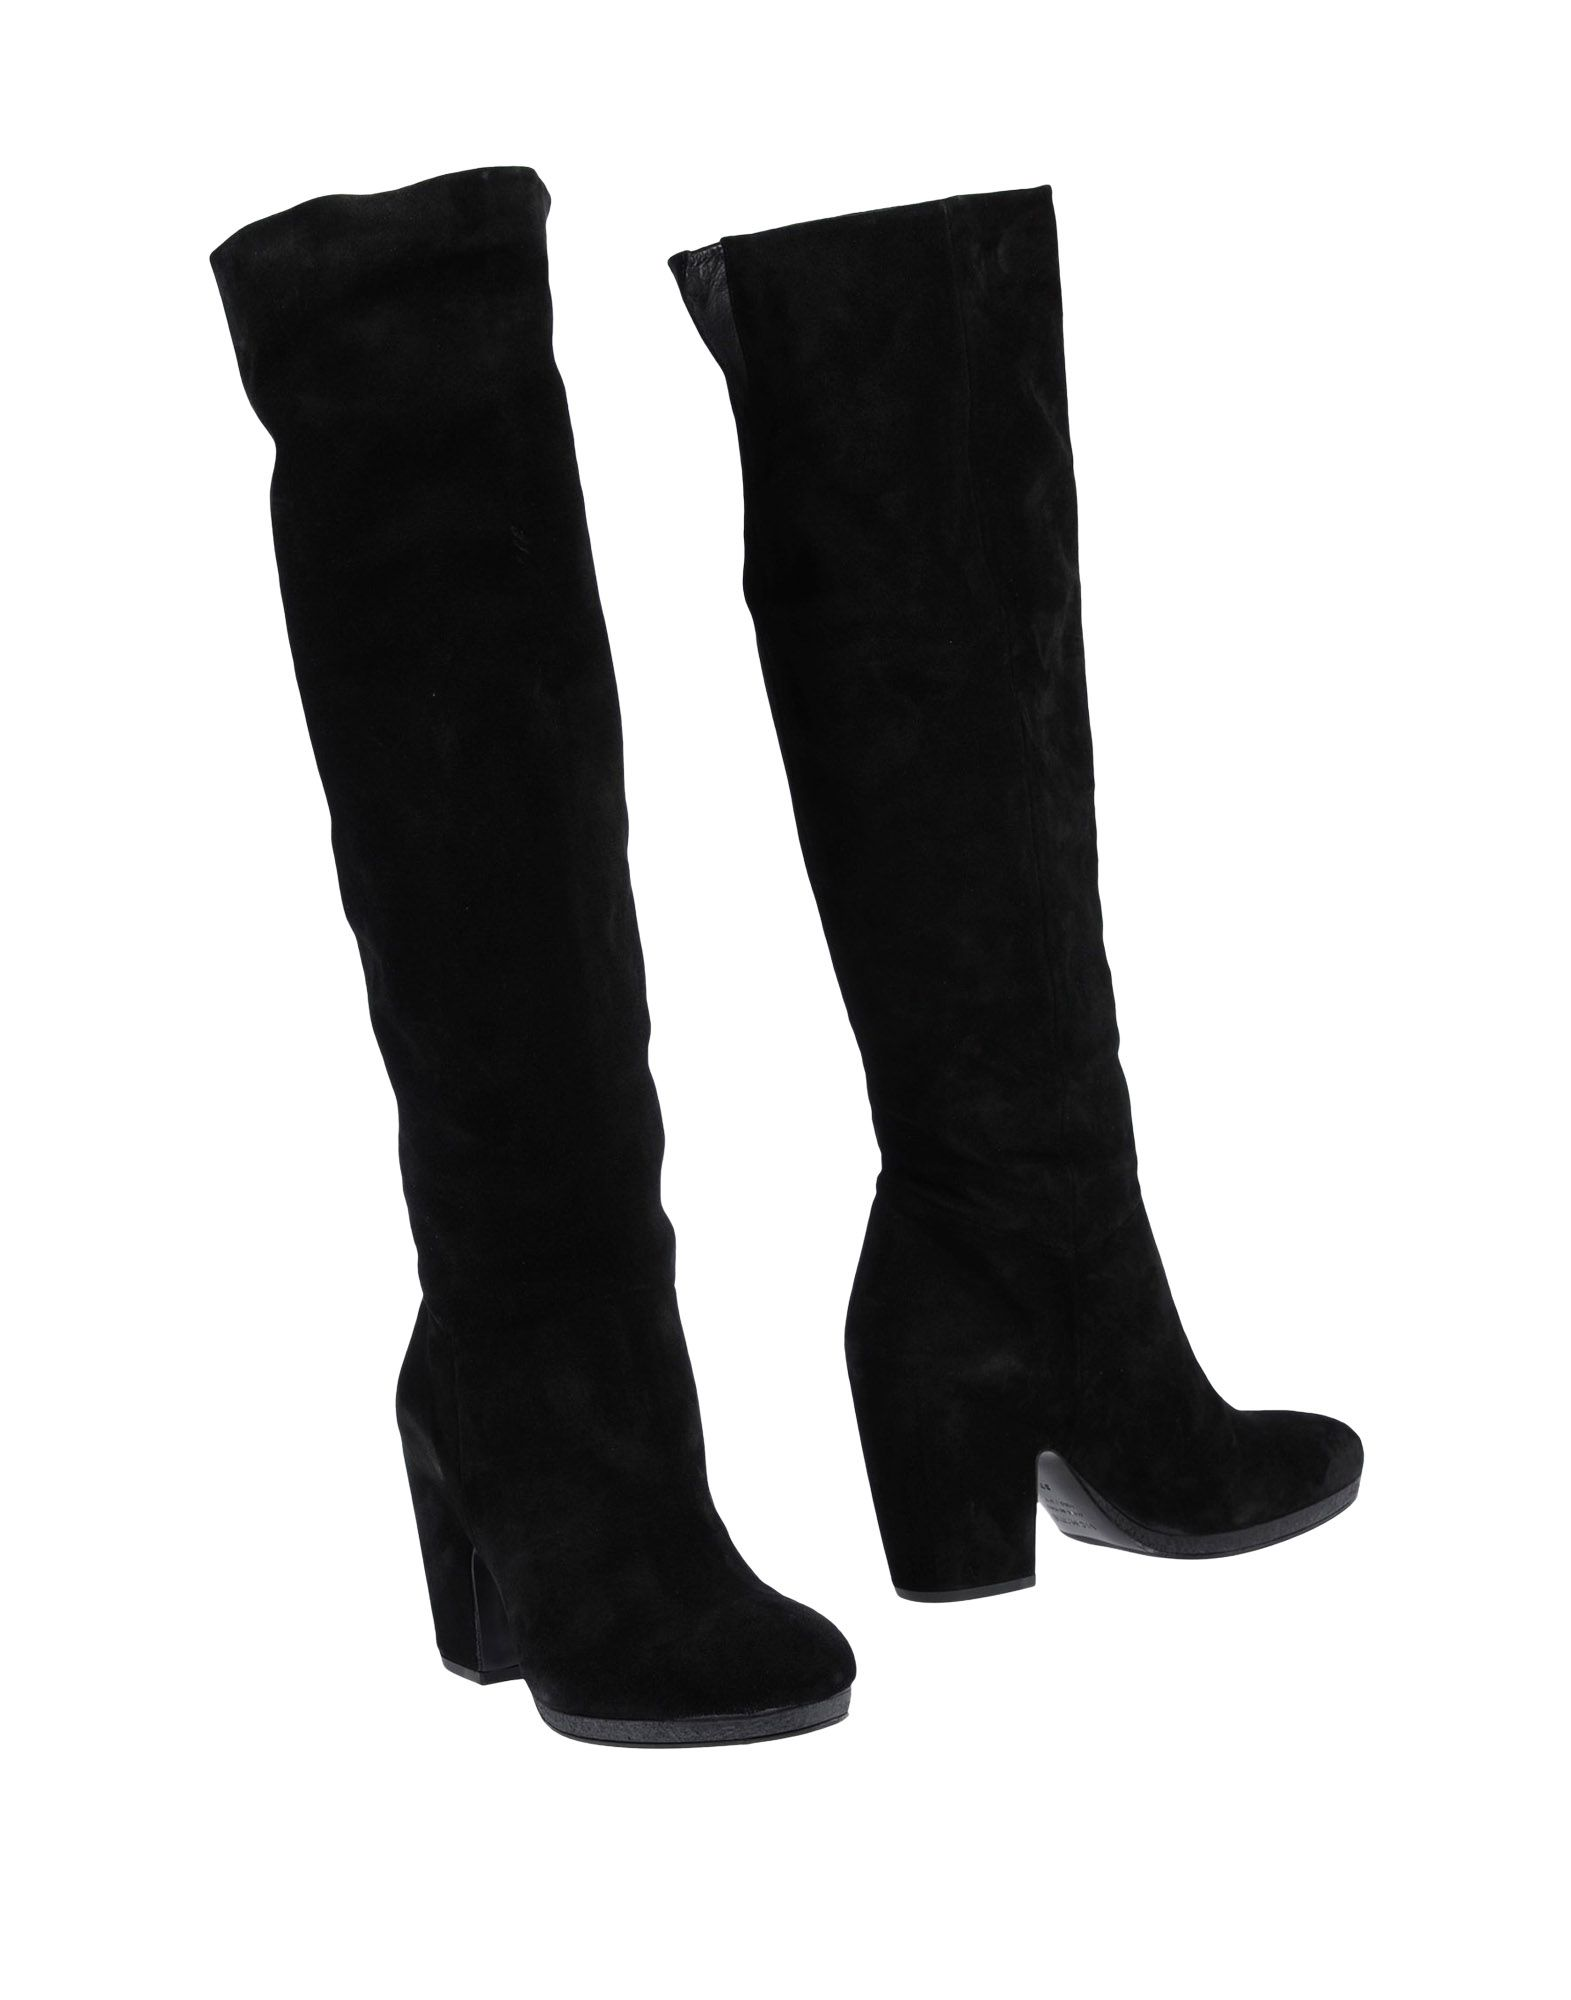 Vic Matiē Boots - Women on Vic Matiē Boots online on Women  Australia - 11471913VK fec009